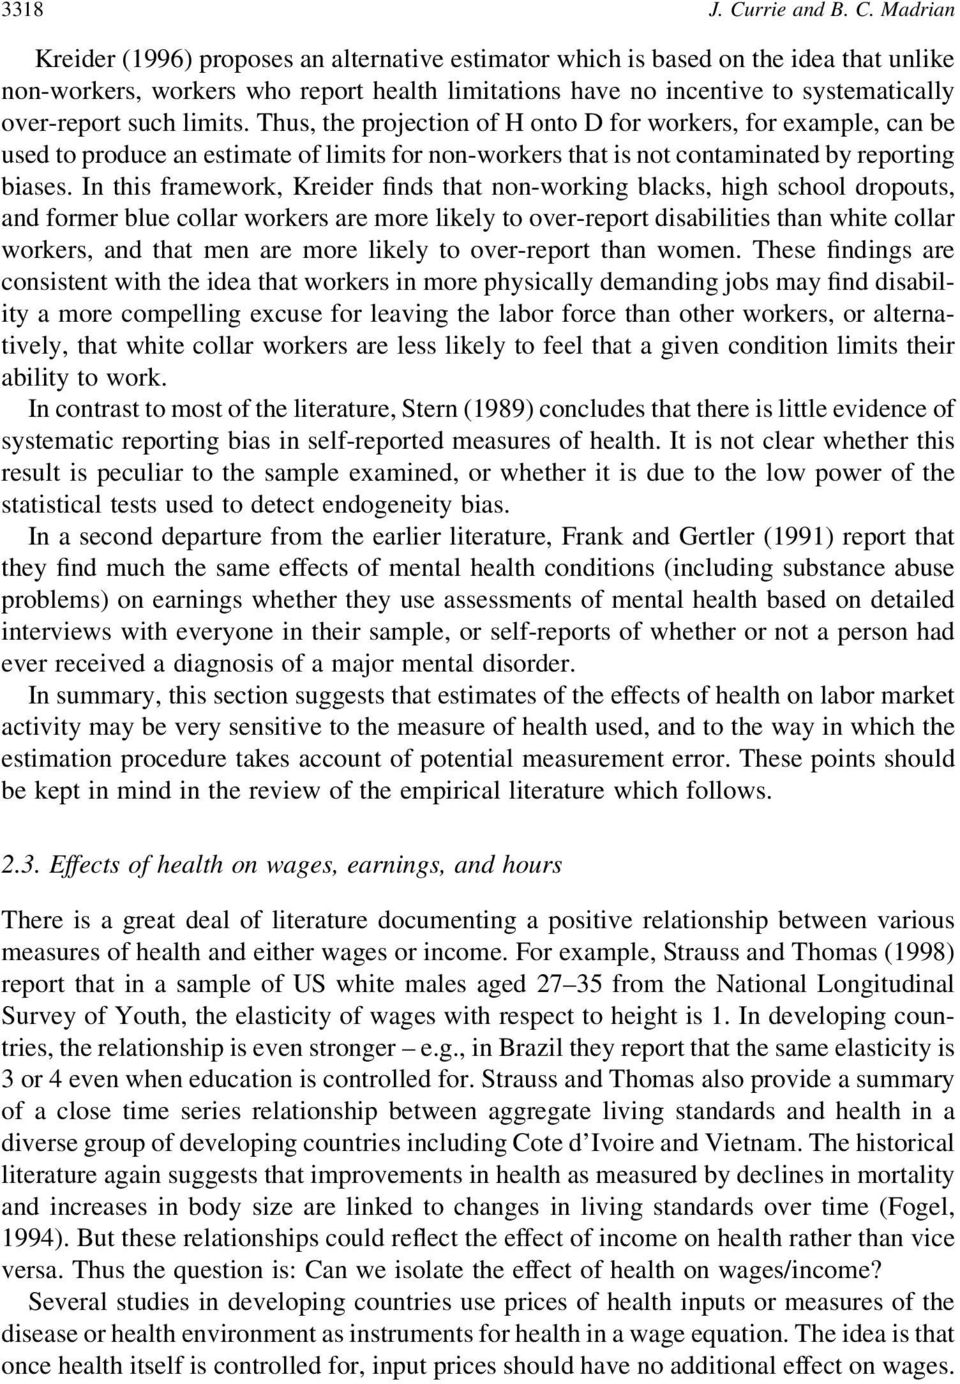 Madrian Kreider (1996) proposes an alternative estimator which is based on the idea that unlike non-workers, workers who report health limitations have no incentive to systematically over-report such